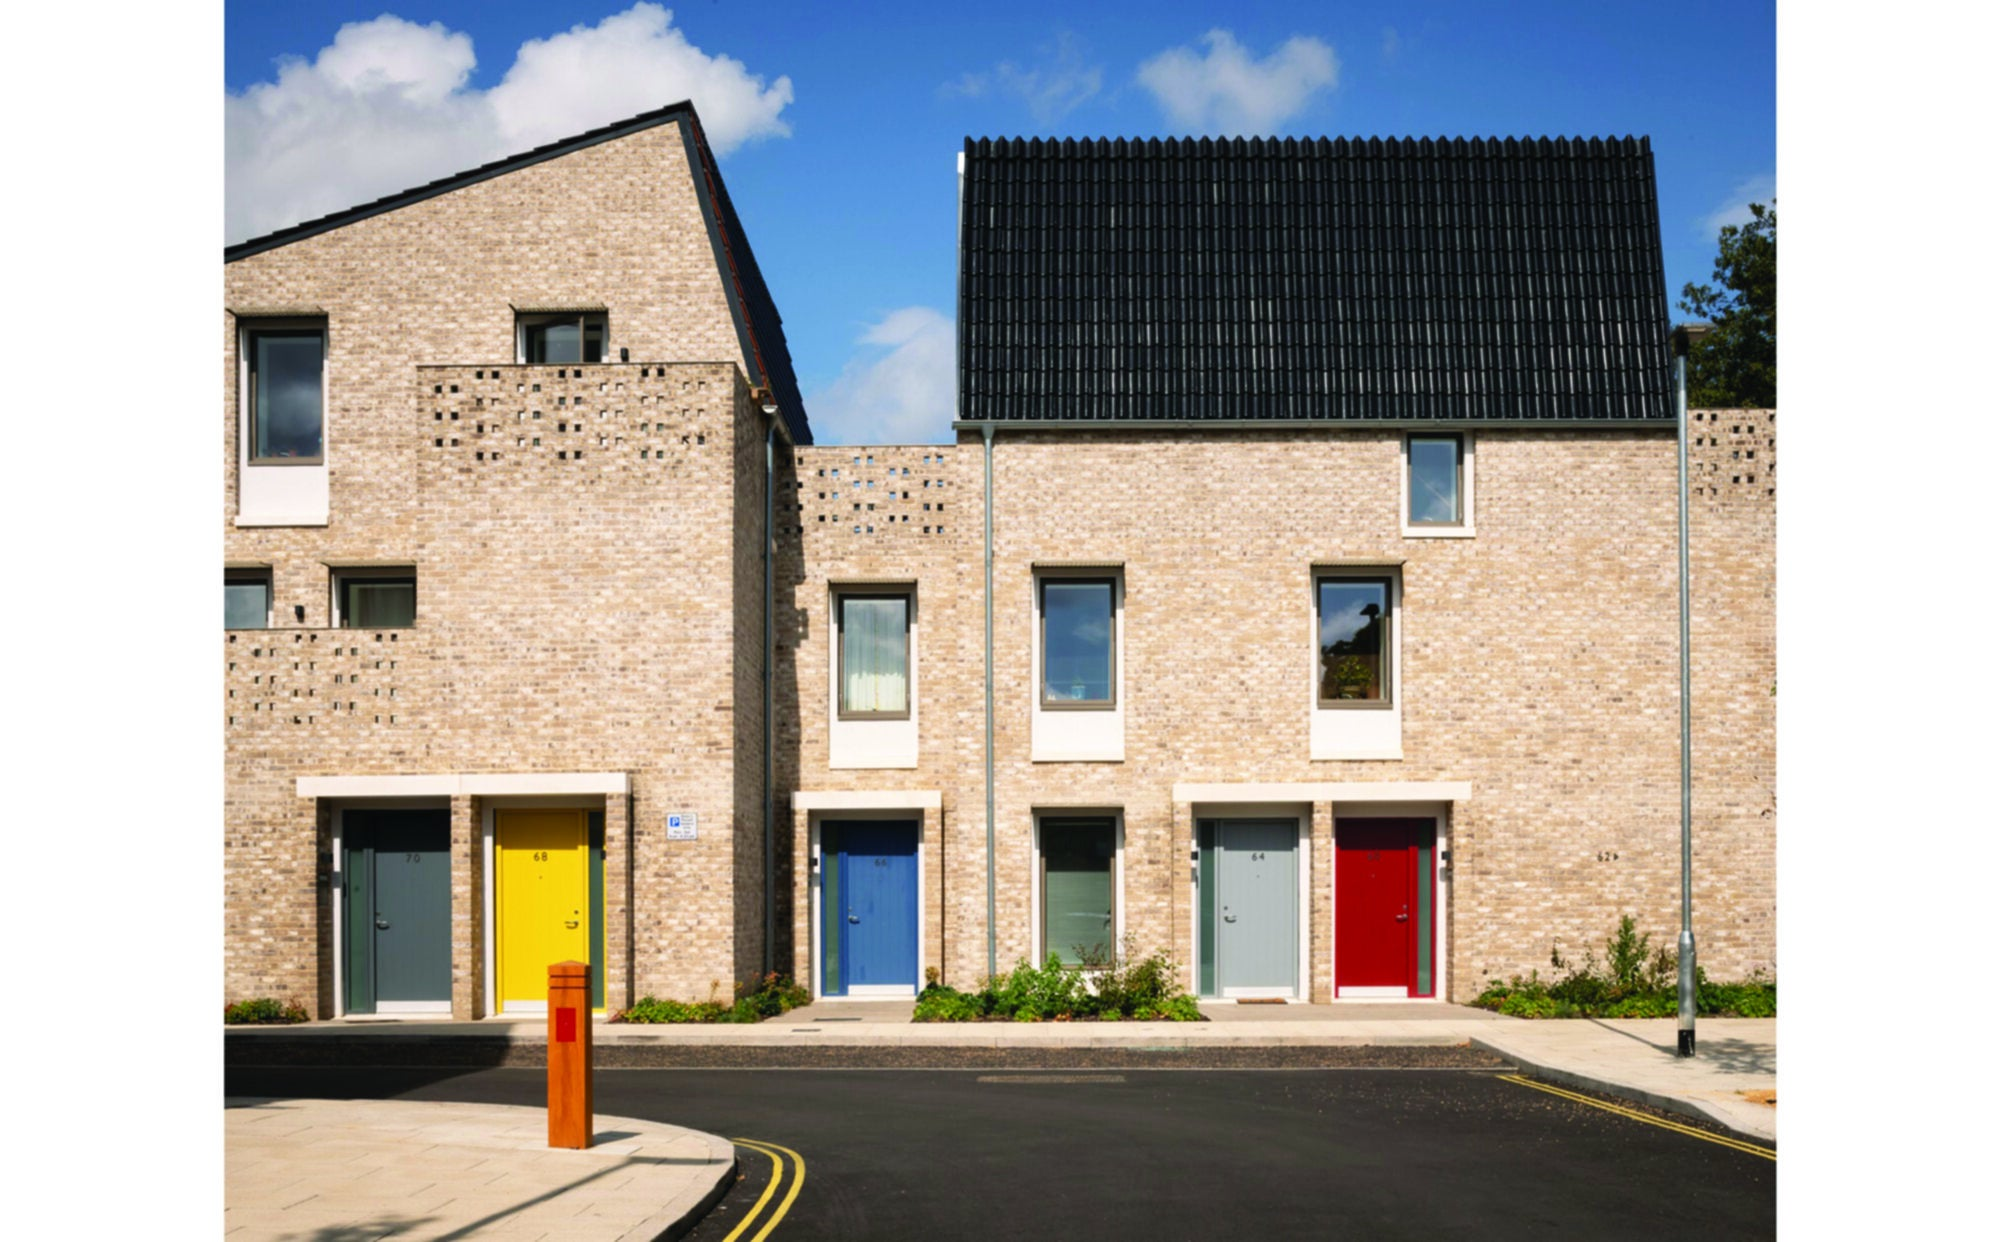 Britain's humble utopias: what the Stirling Prize means for council housing